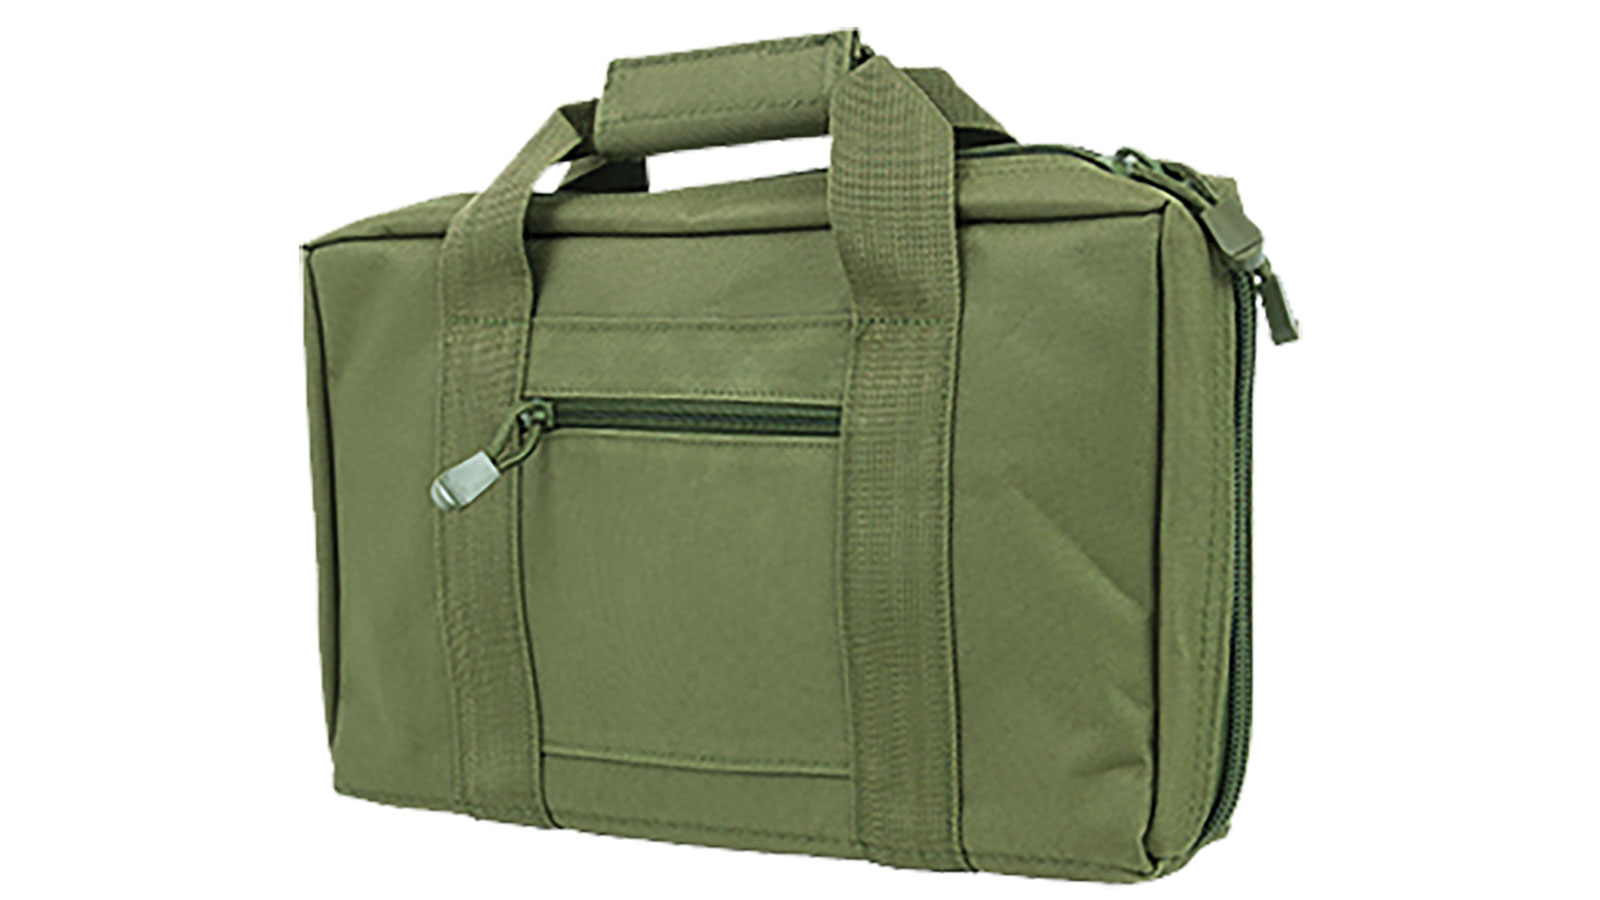 NC Star Discreet Pistol Case Green